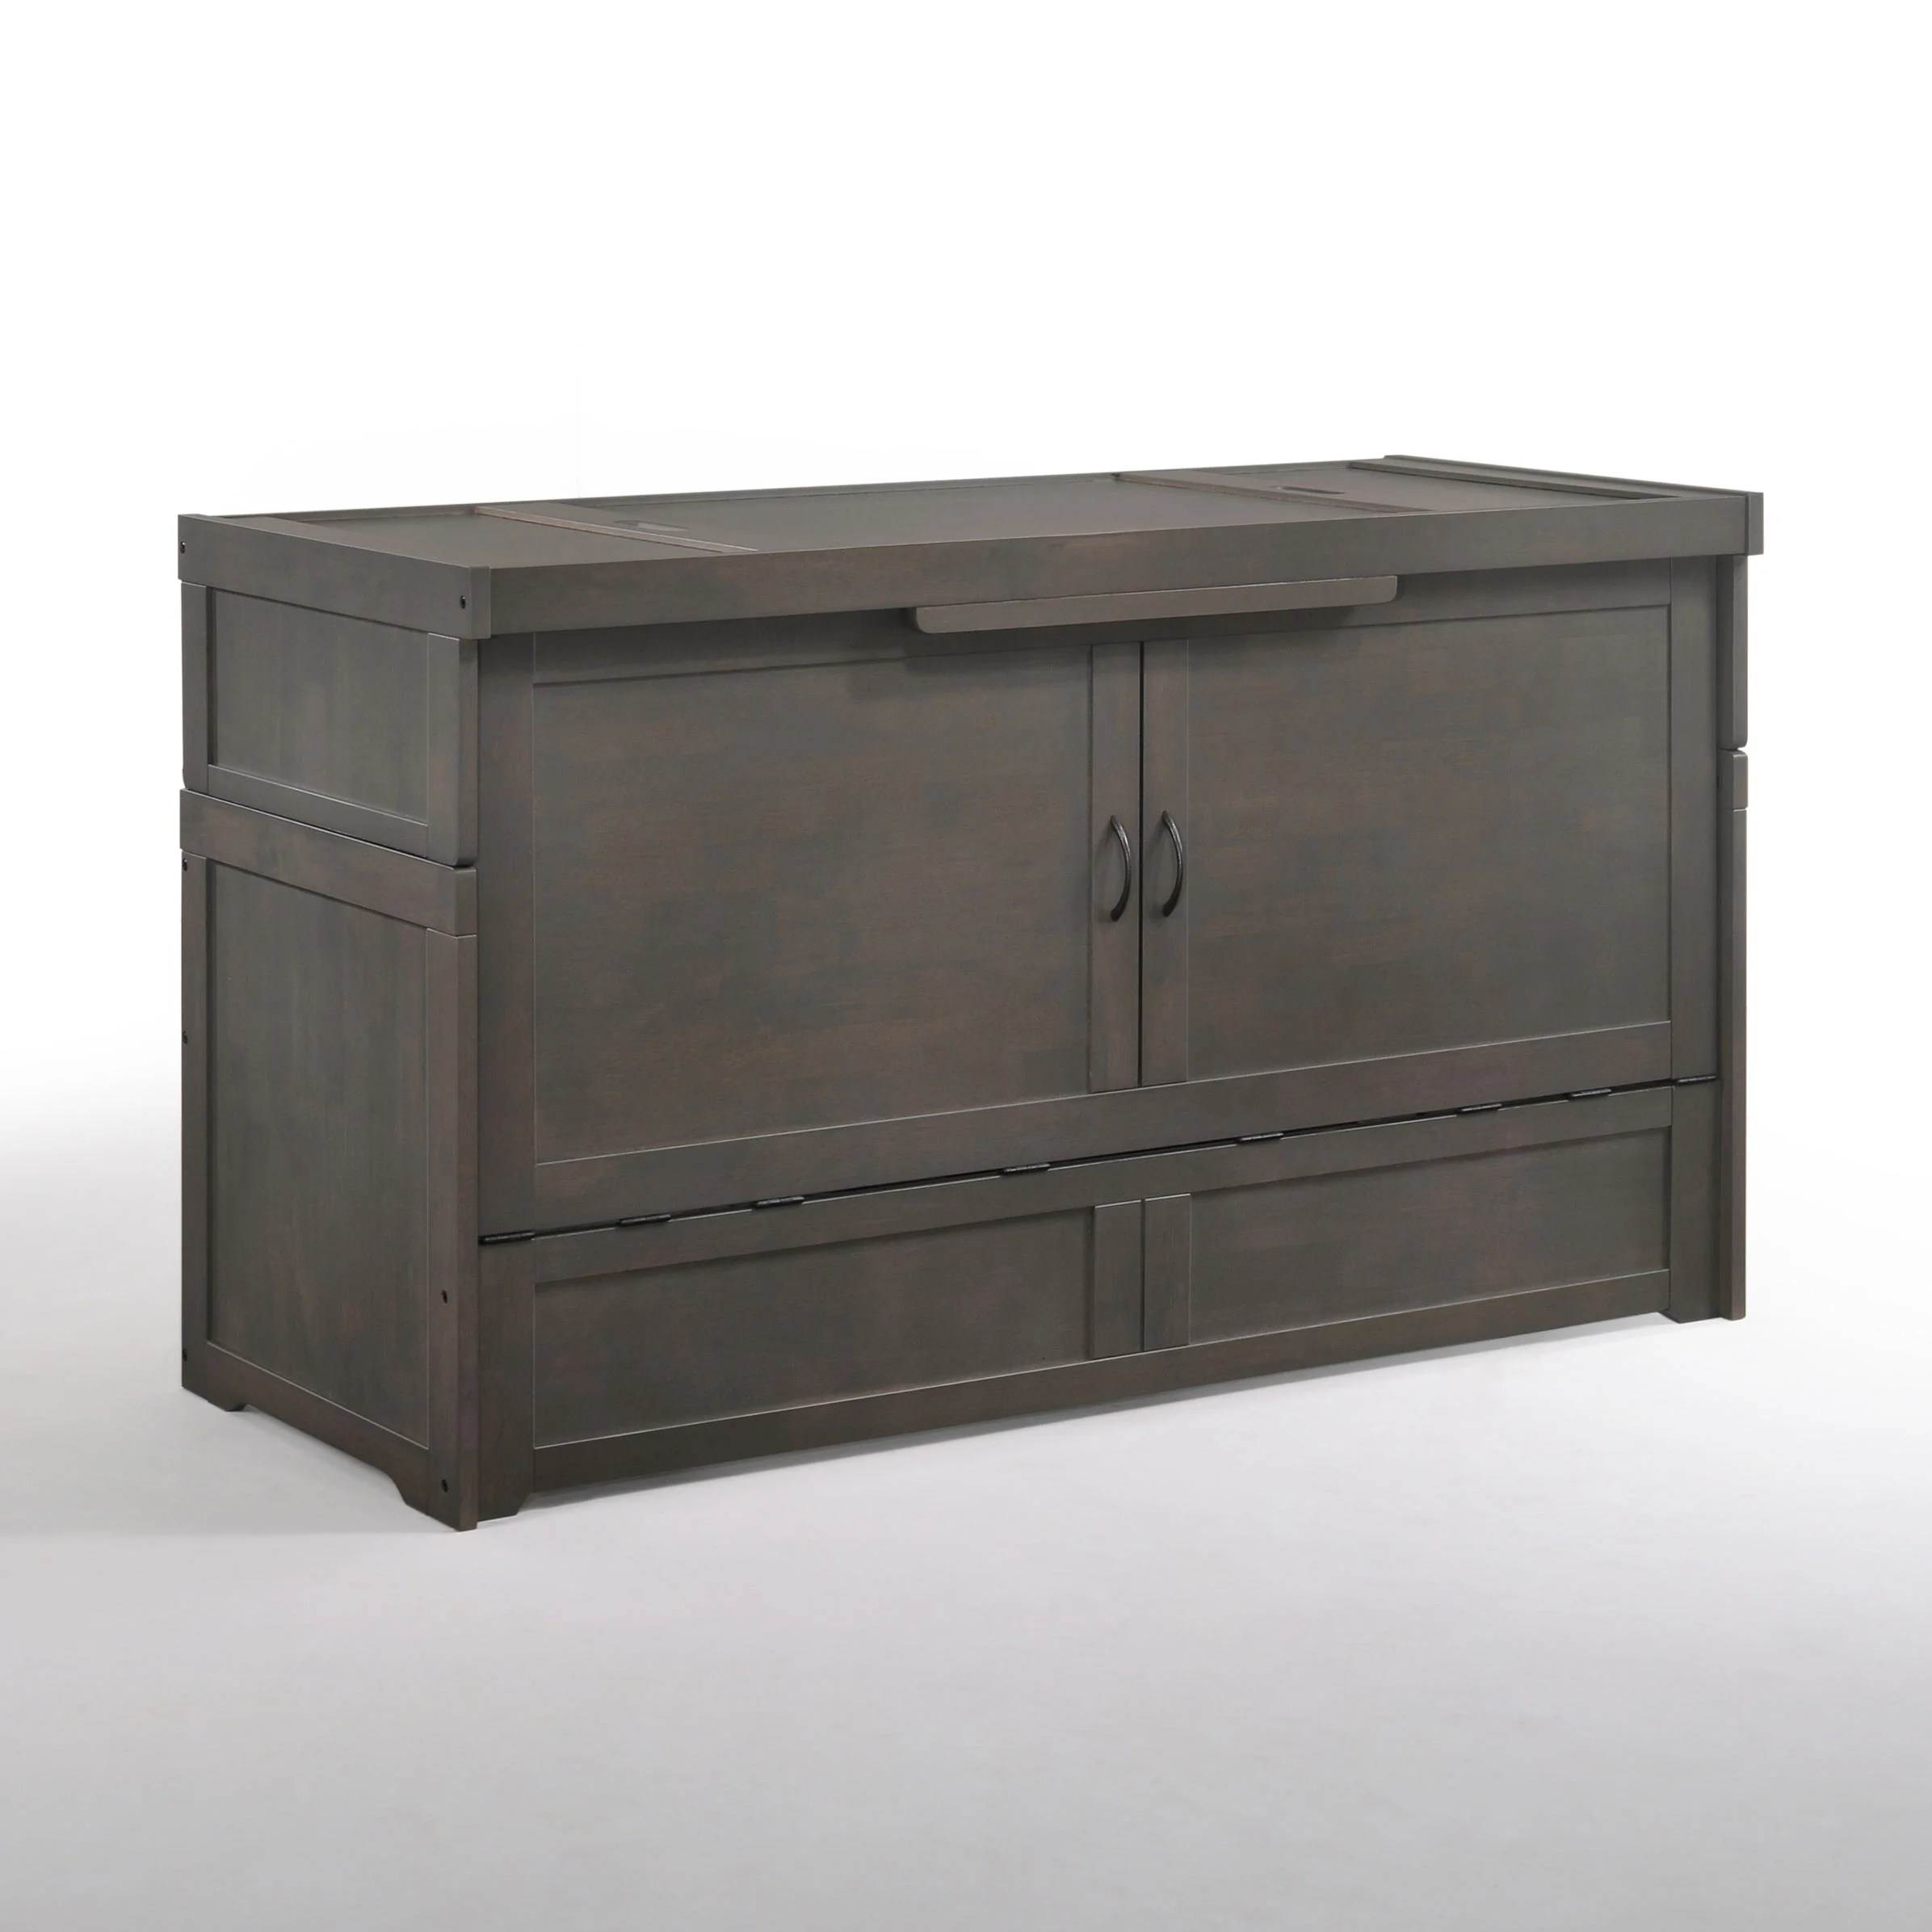 Cube 2 Queen Murphy Cabinet Bed Stonewash By Night Day Furniture